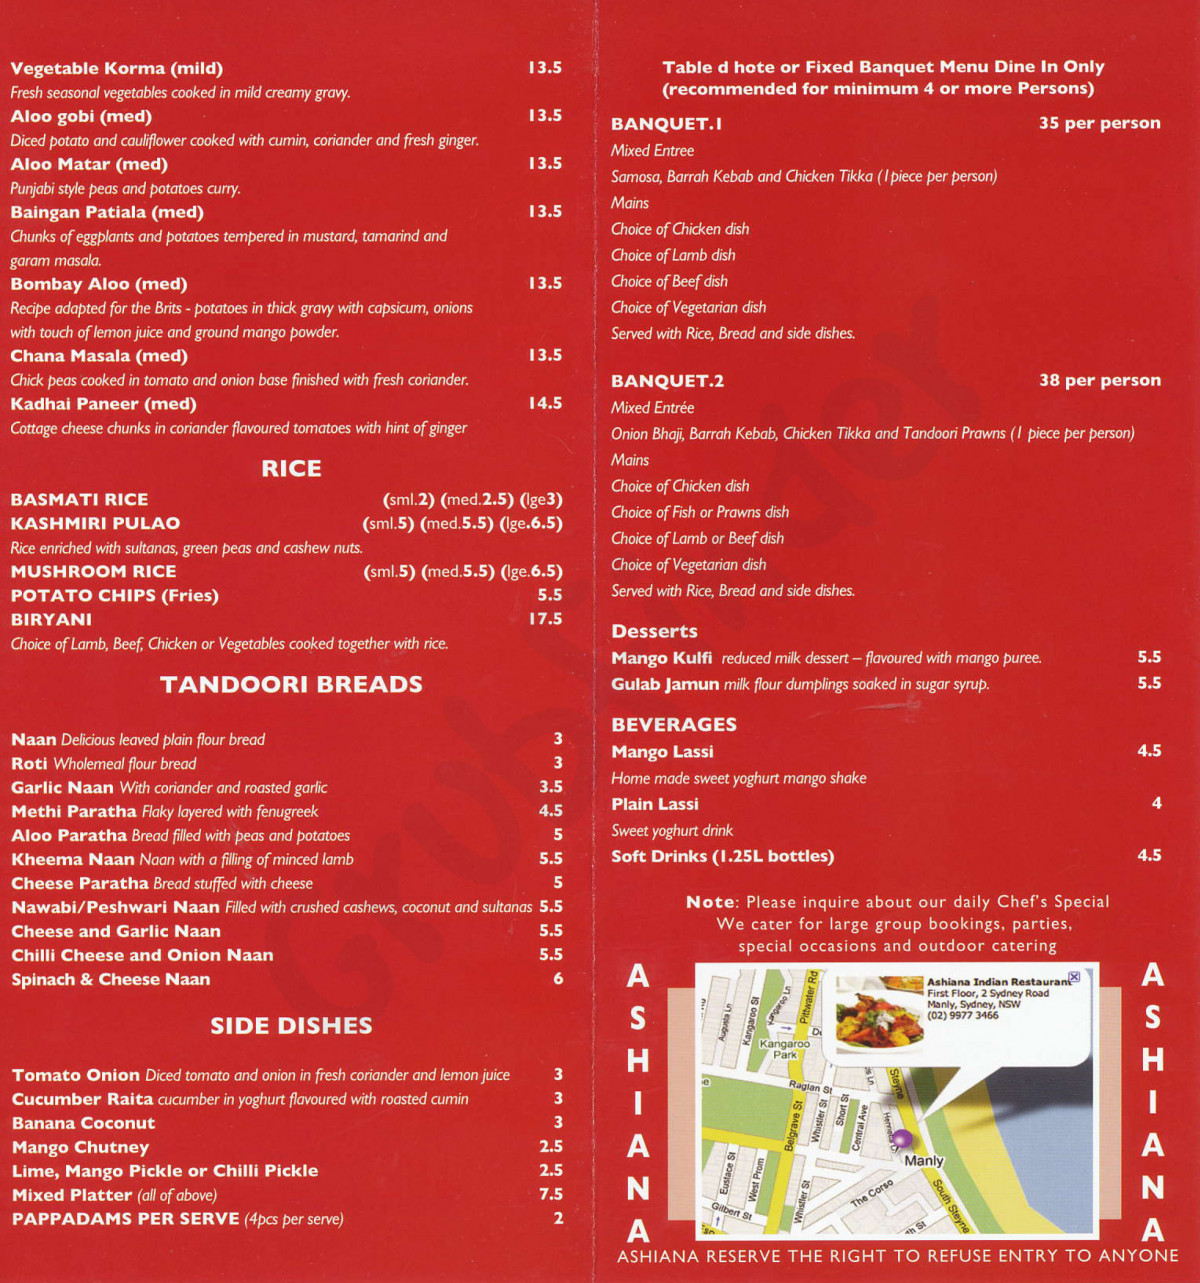 Ashiana Indian Restaurant: 50% off the first table of the